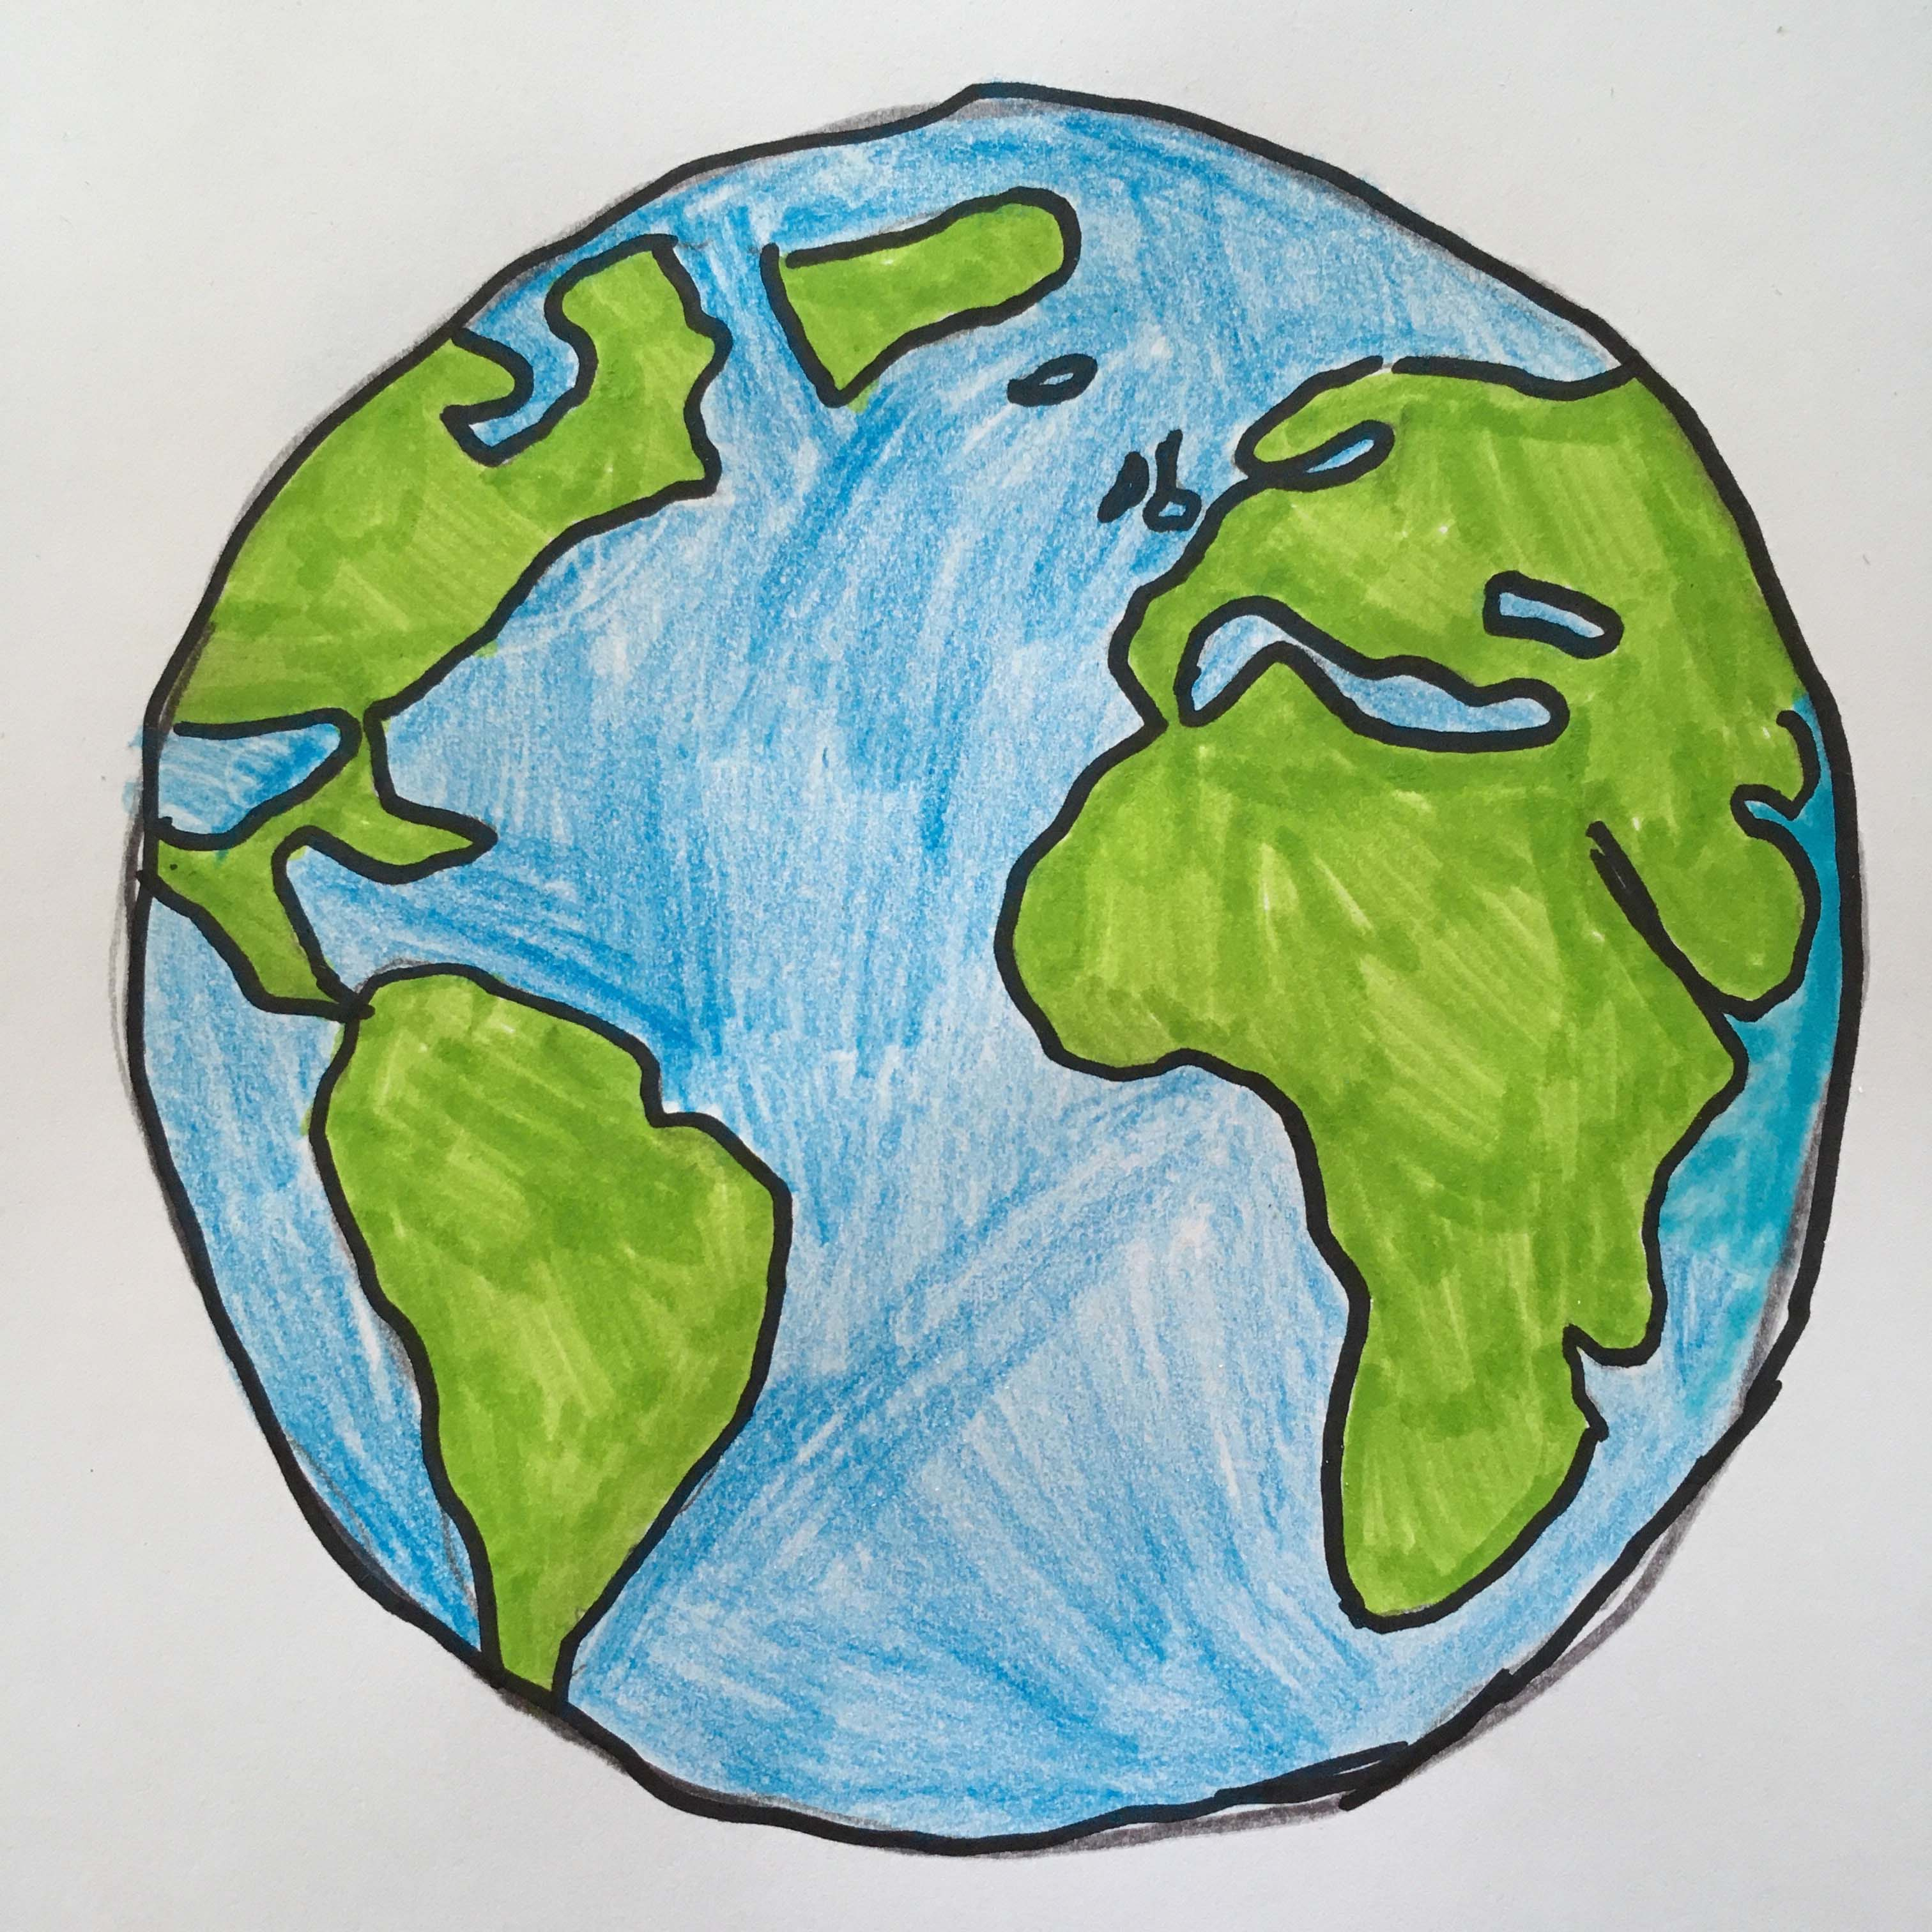 The image depicts a drawing of a globe.